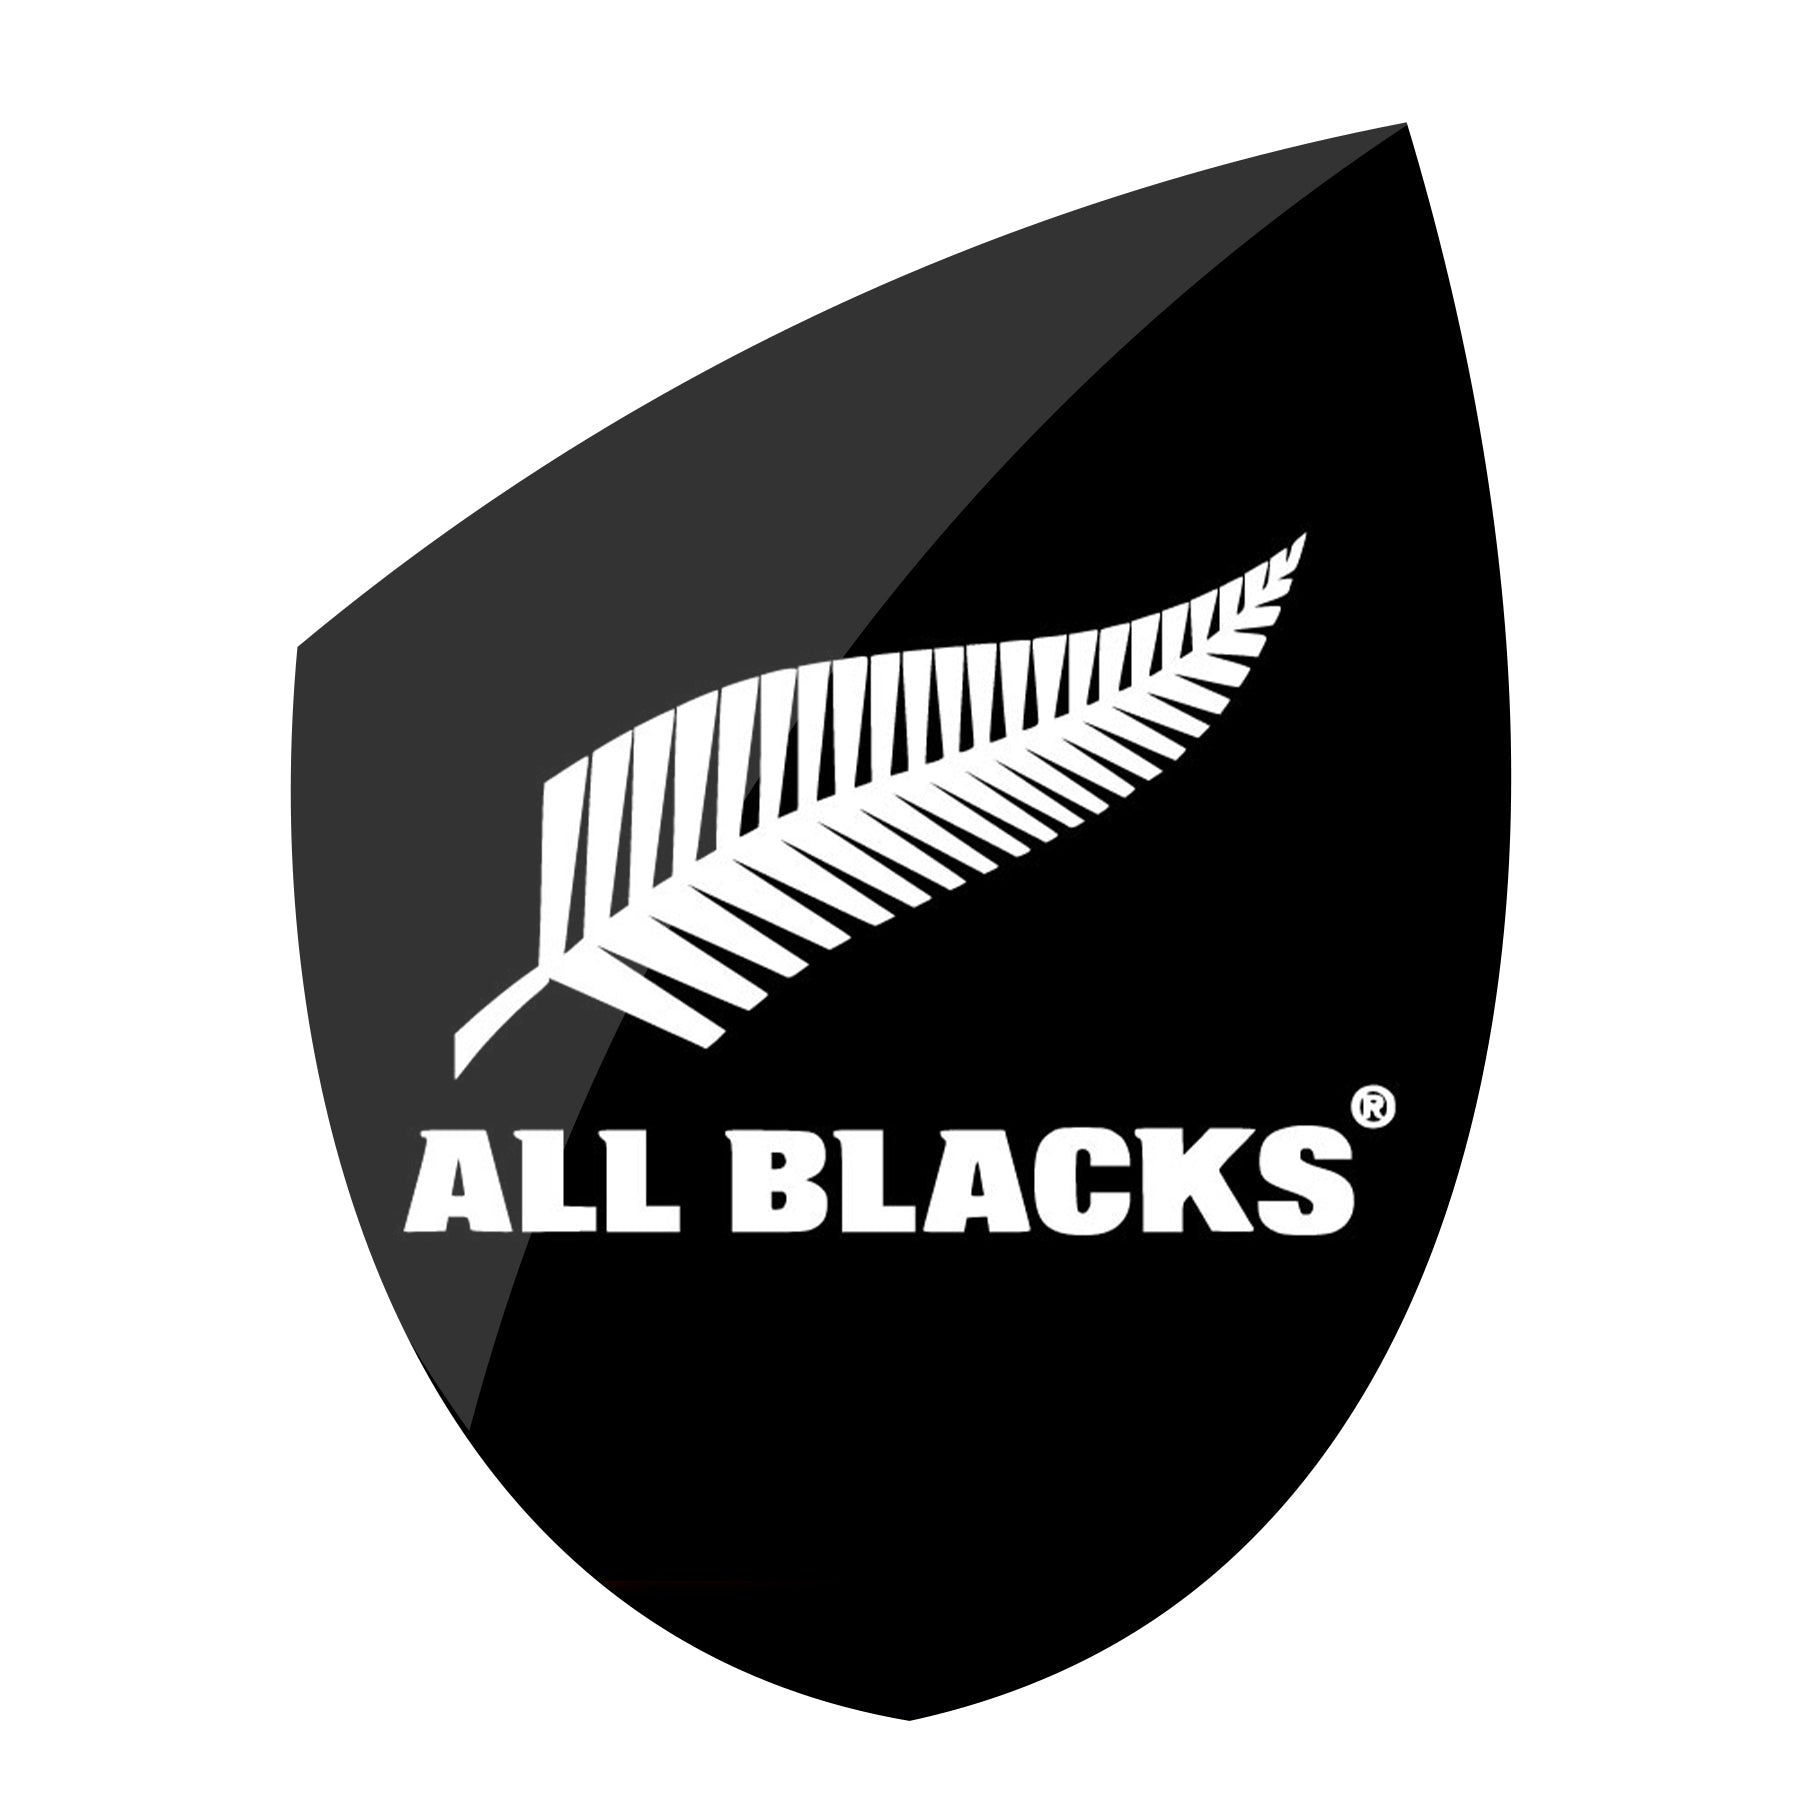 Exclusive All Blacks Rugby Gear